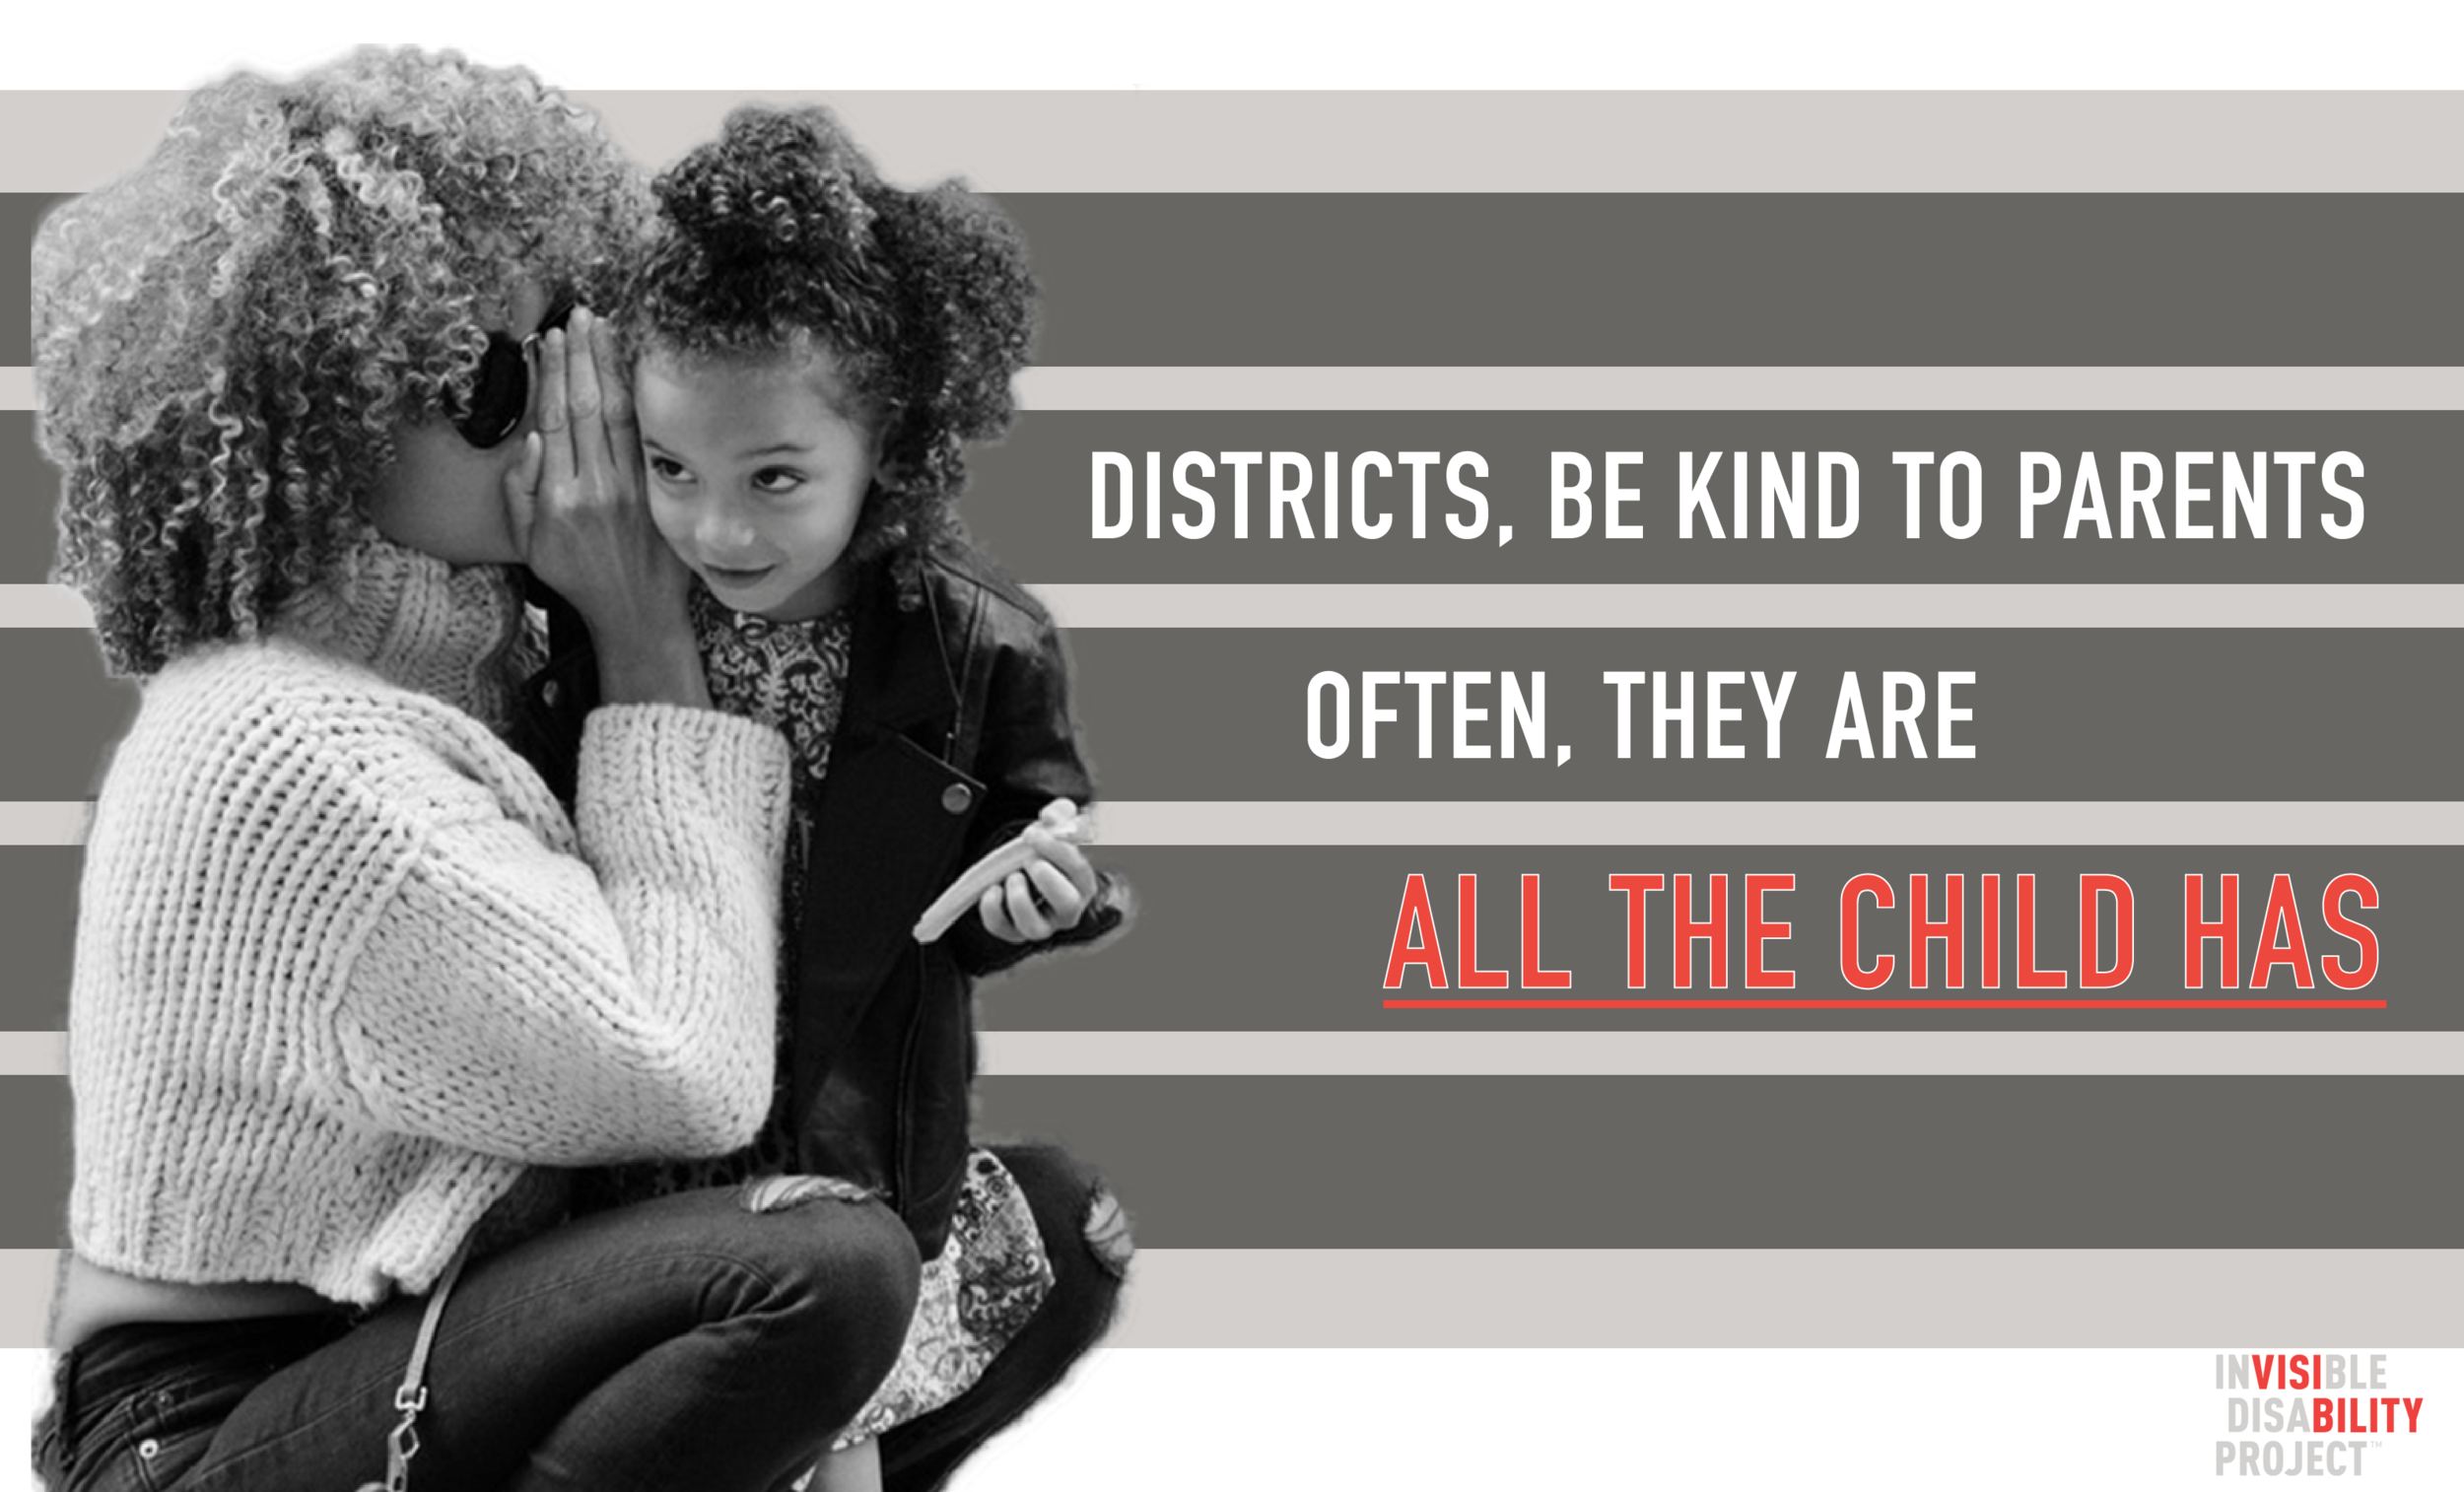 Districts, be kind to parents. Often, they are all the child has.